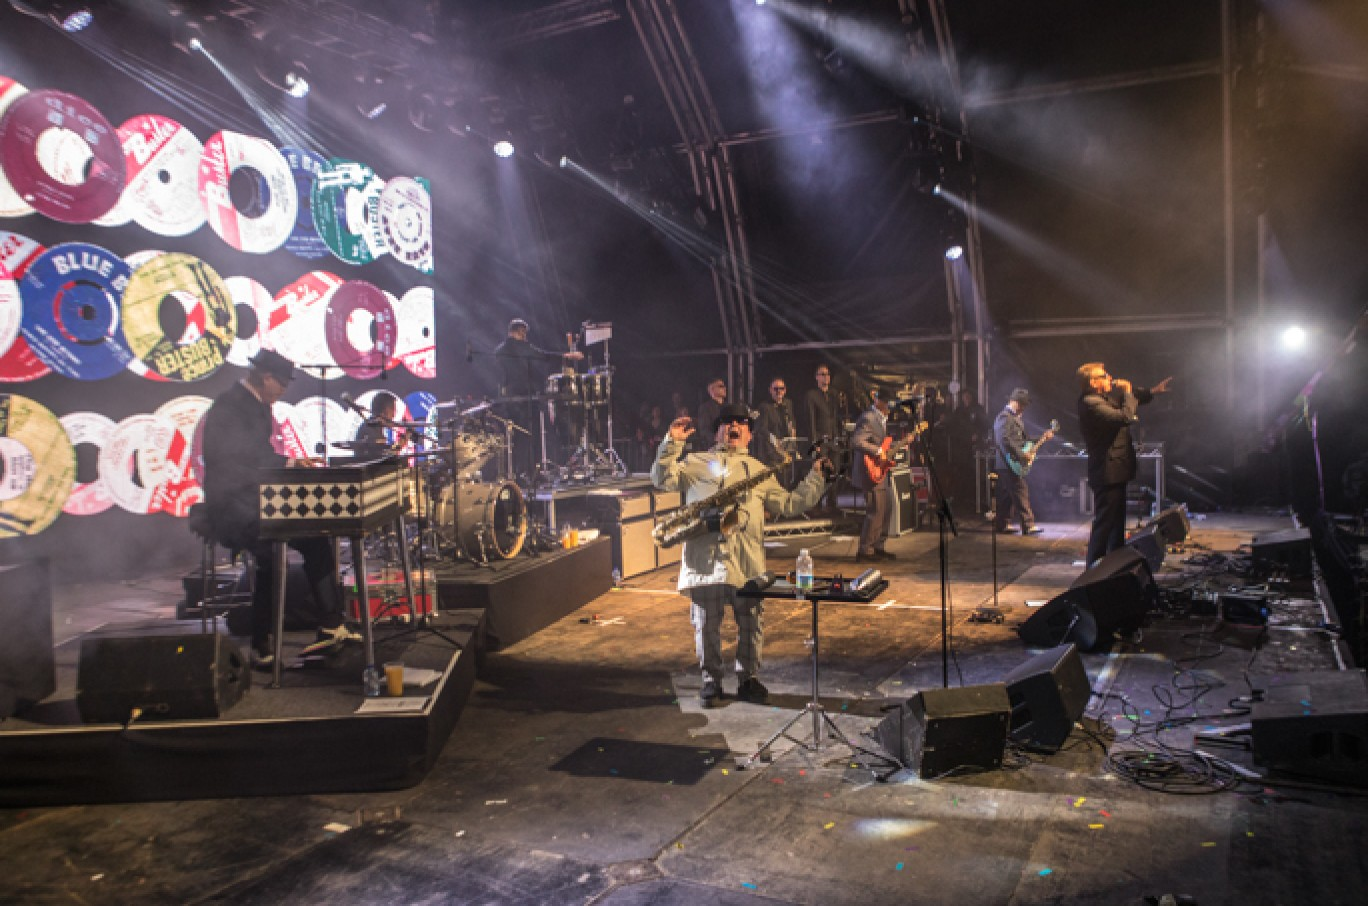 6_38-camp-bestival-2017-madness-vf-vic_52701501585006